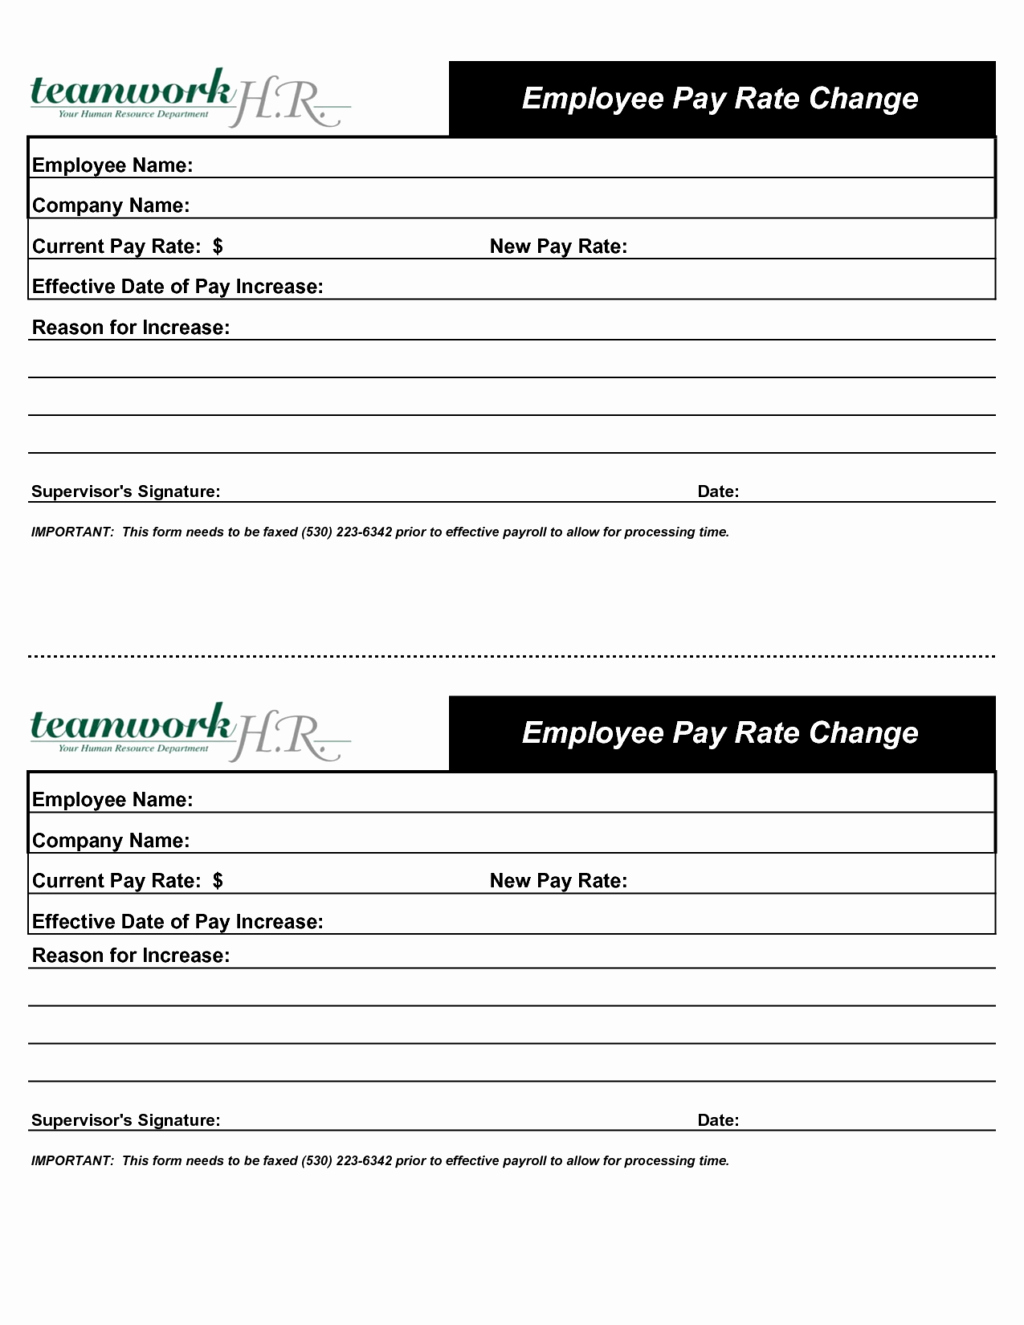 inspirational employee pay rate change increase form designed by nhz